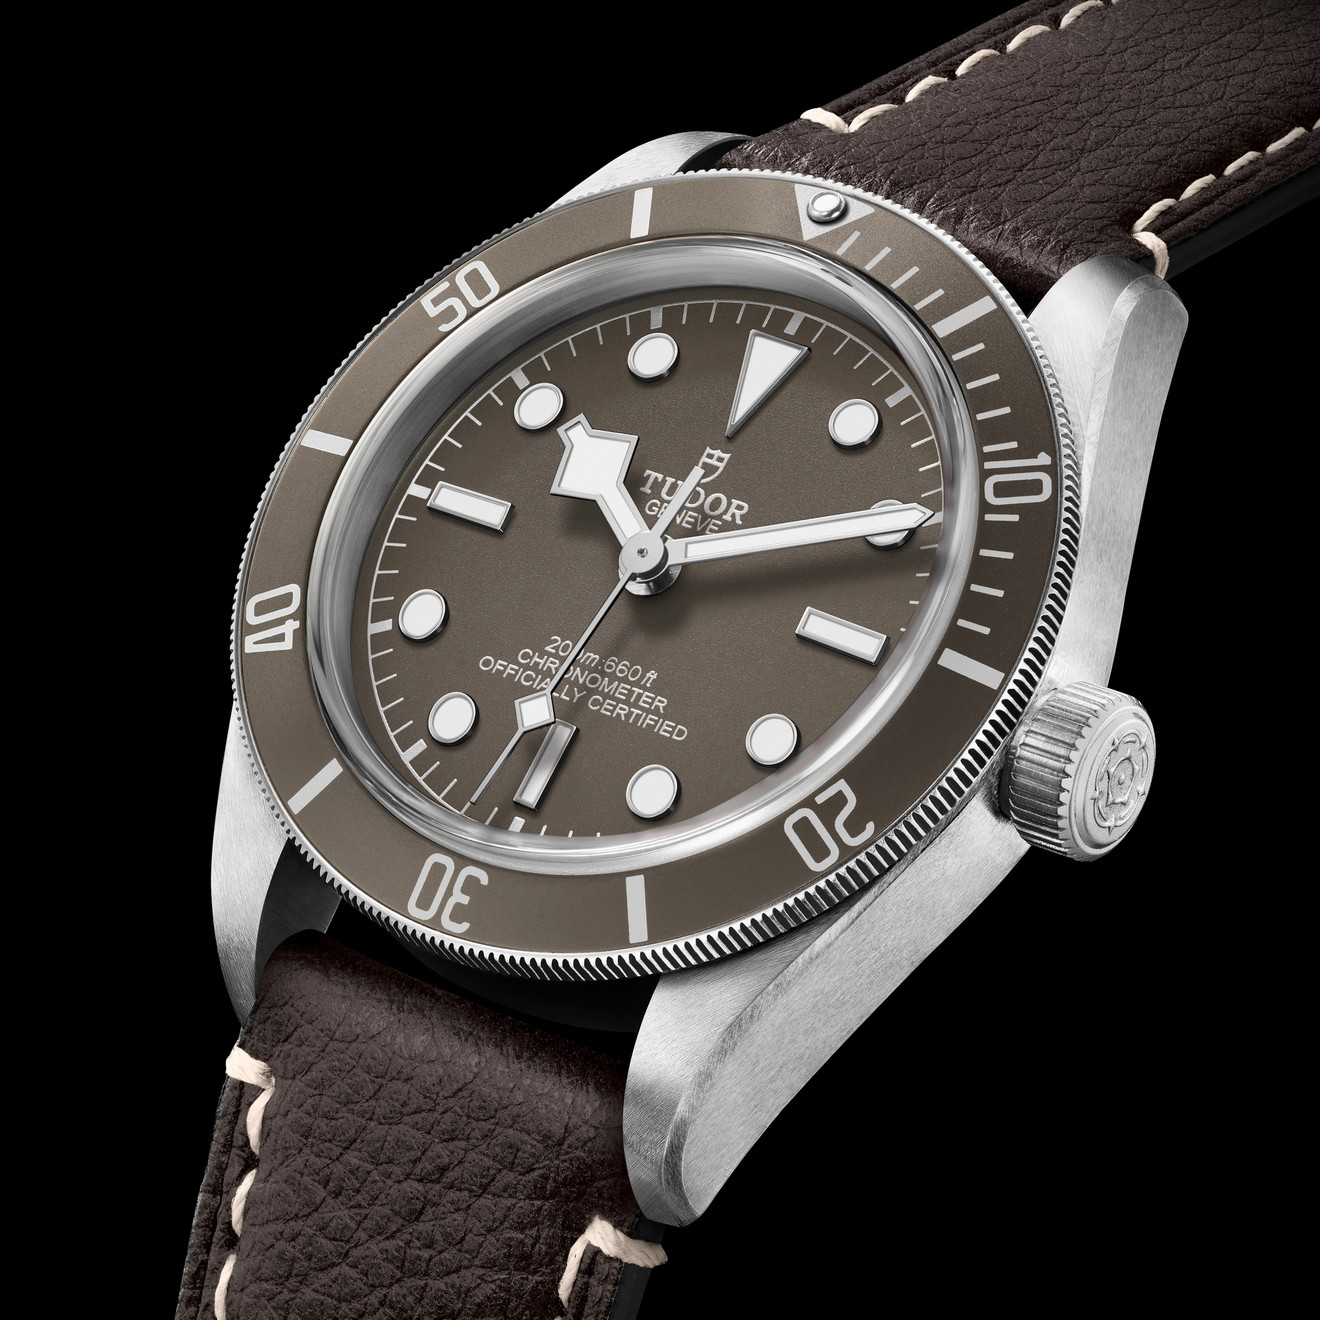 Hey, wait, so this Tudor Black Bay 58 is silver not steel? What differences are there, then?